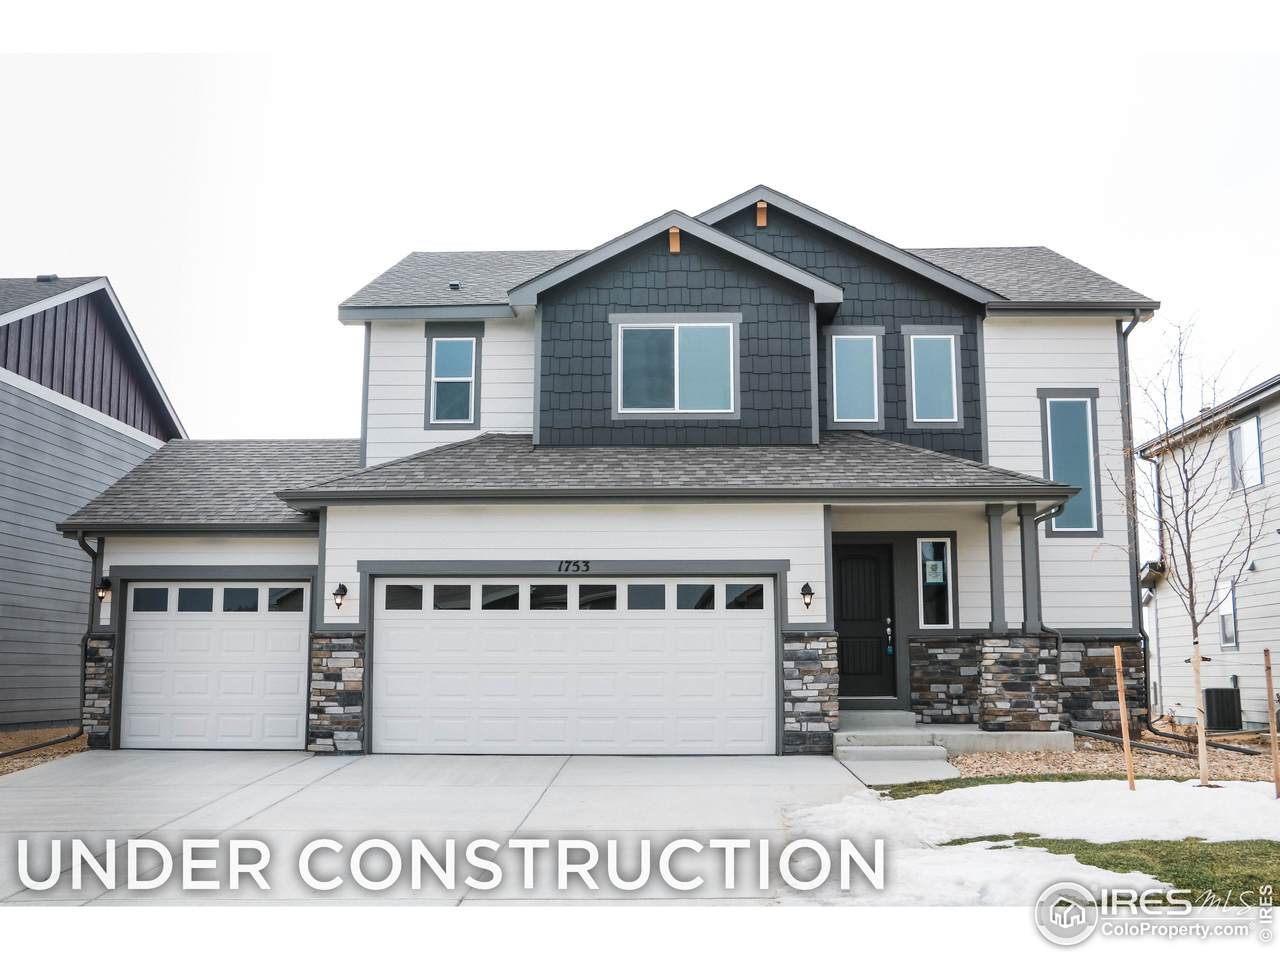 4593 Hollycomb Dr - Photo 1